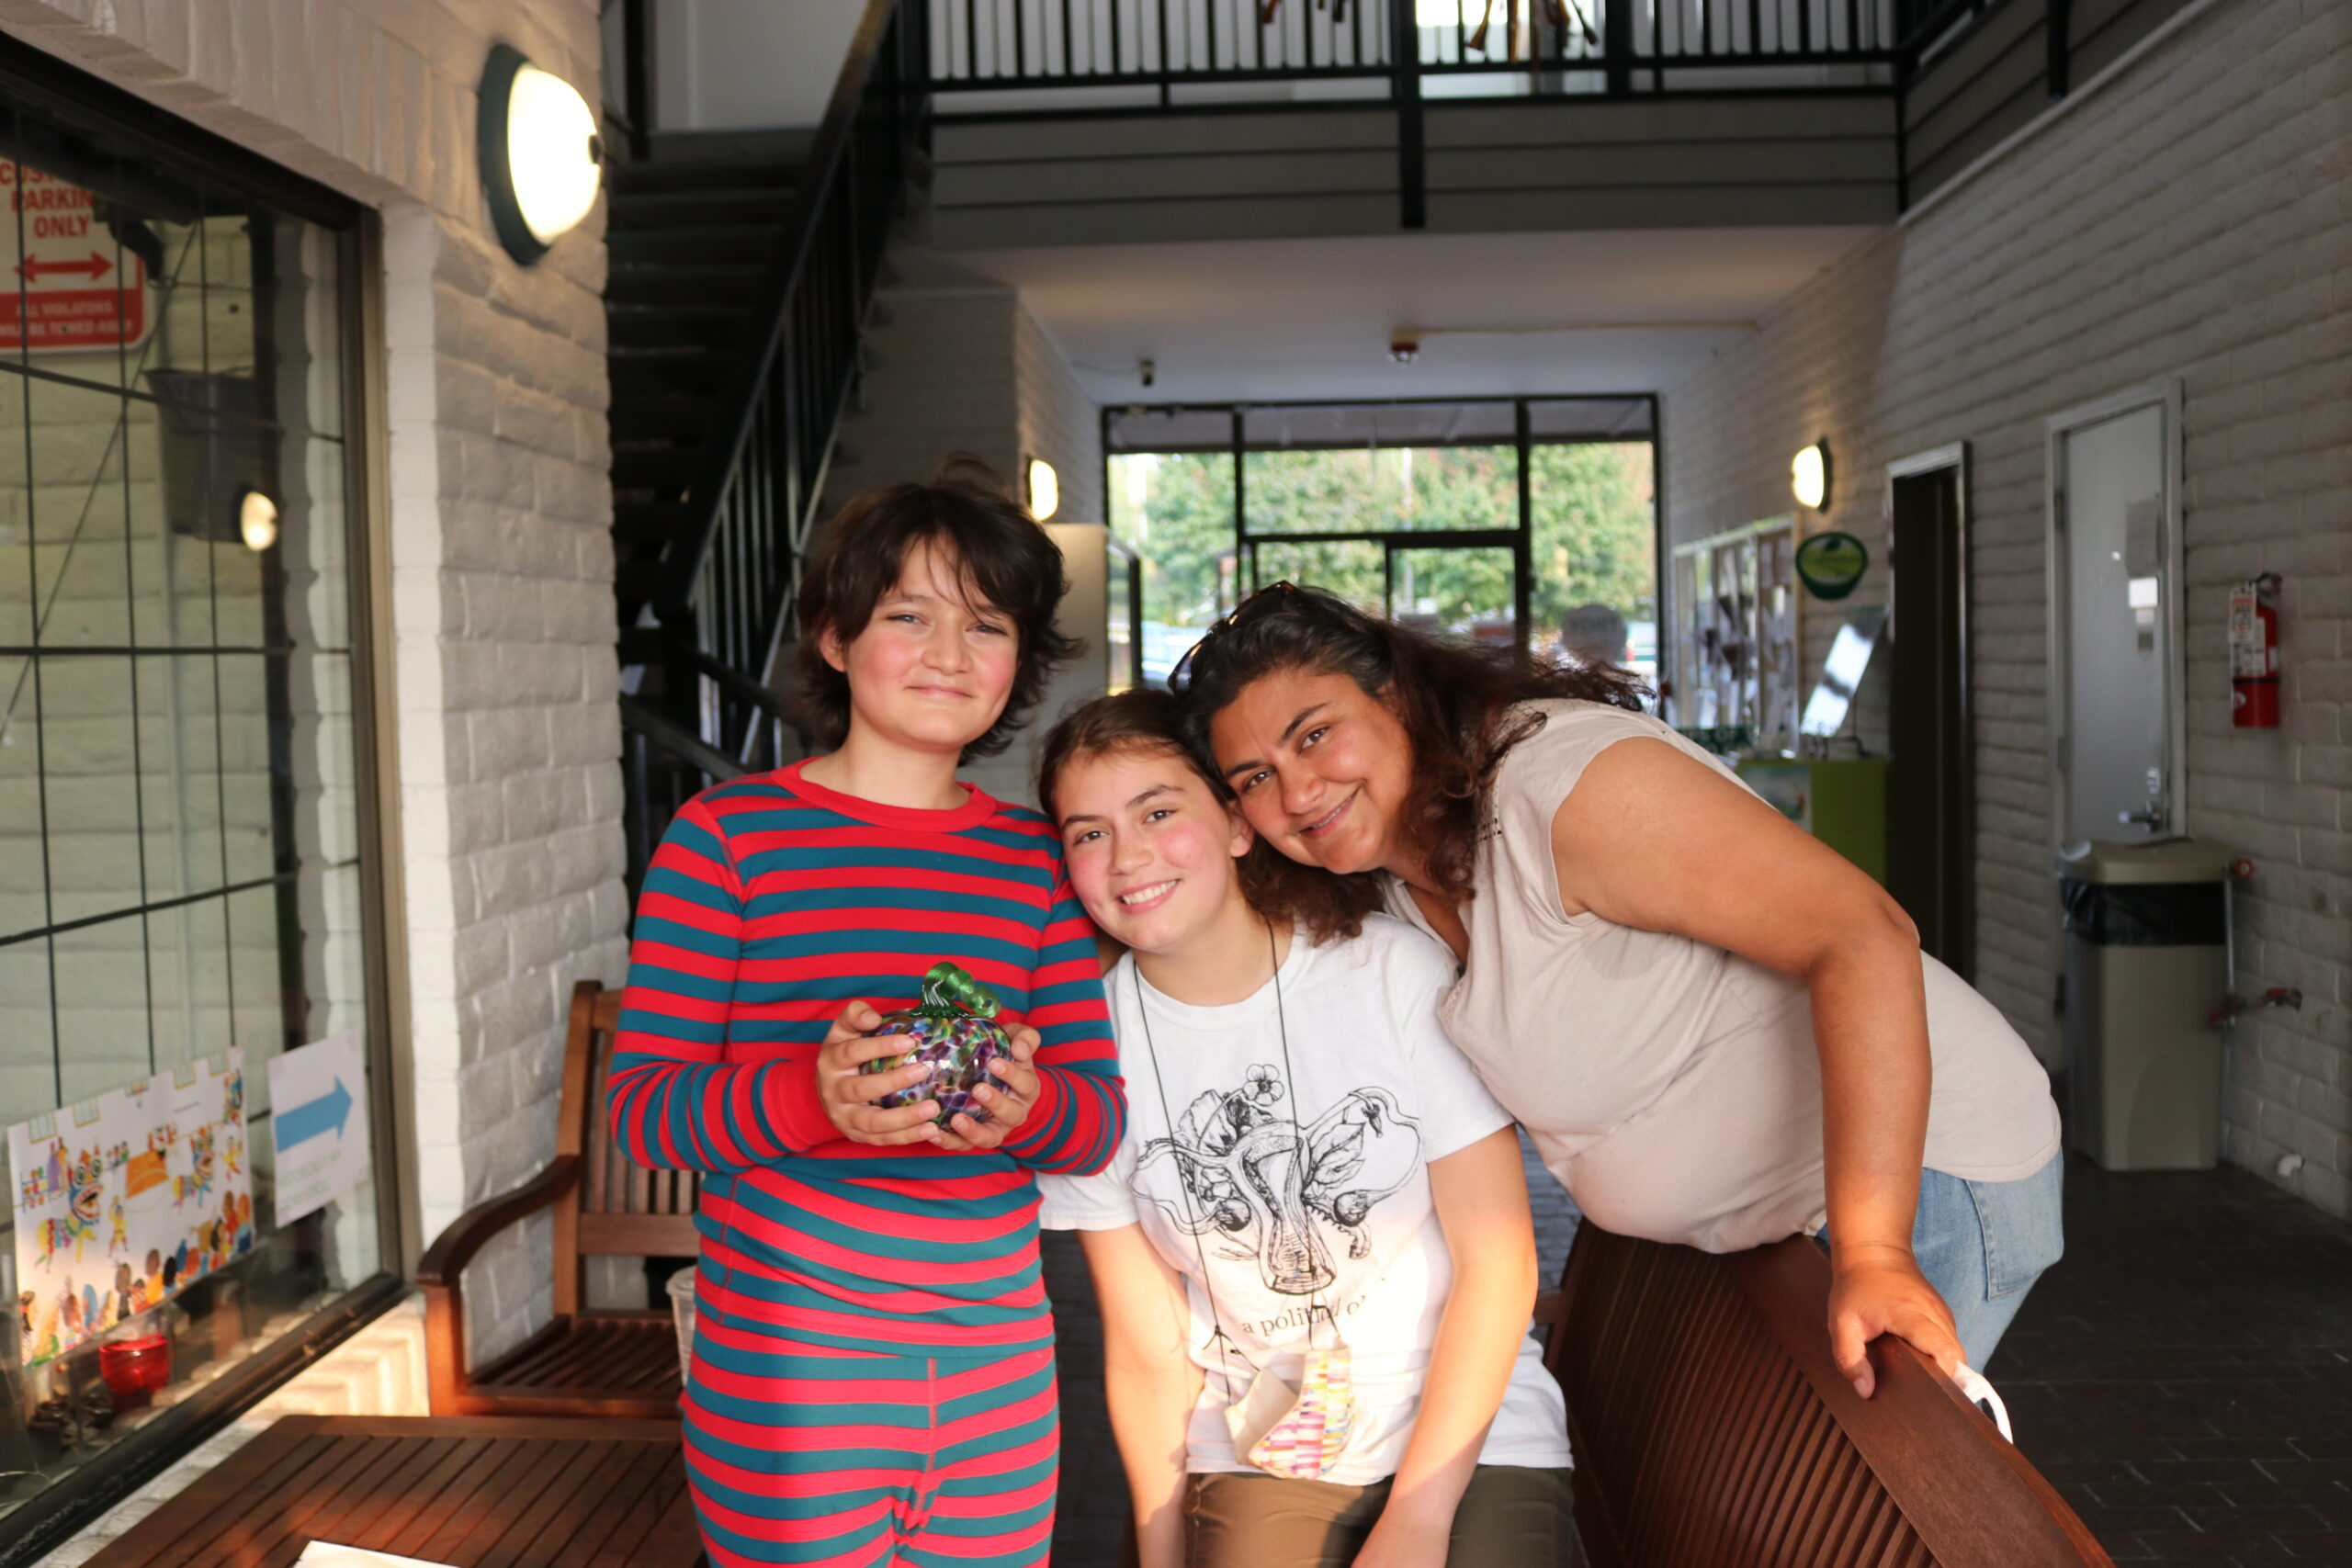 Oliver, sister and mother